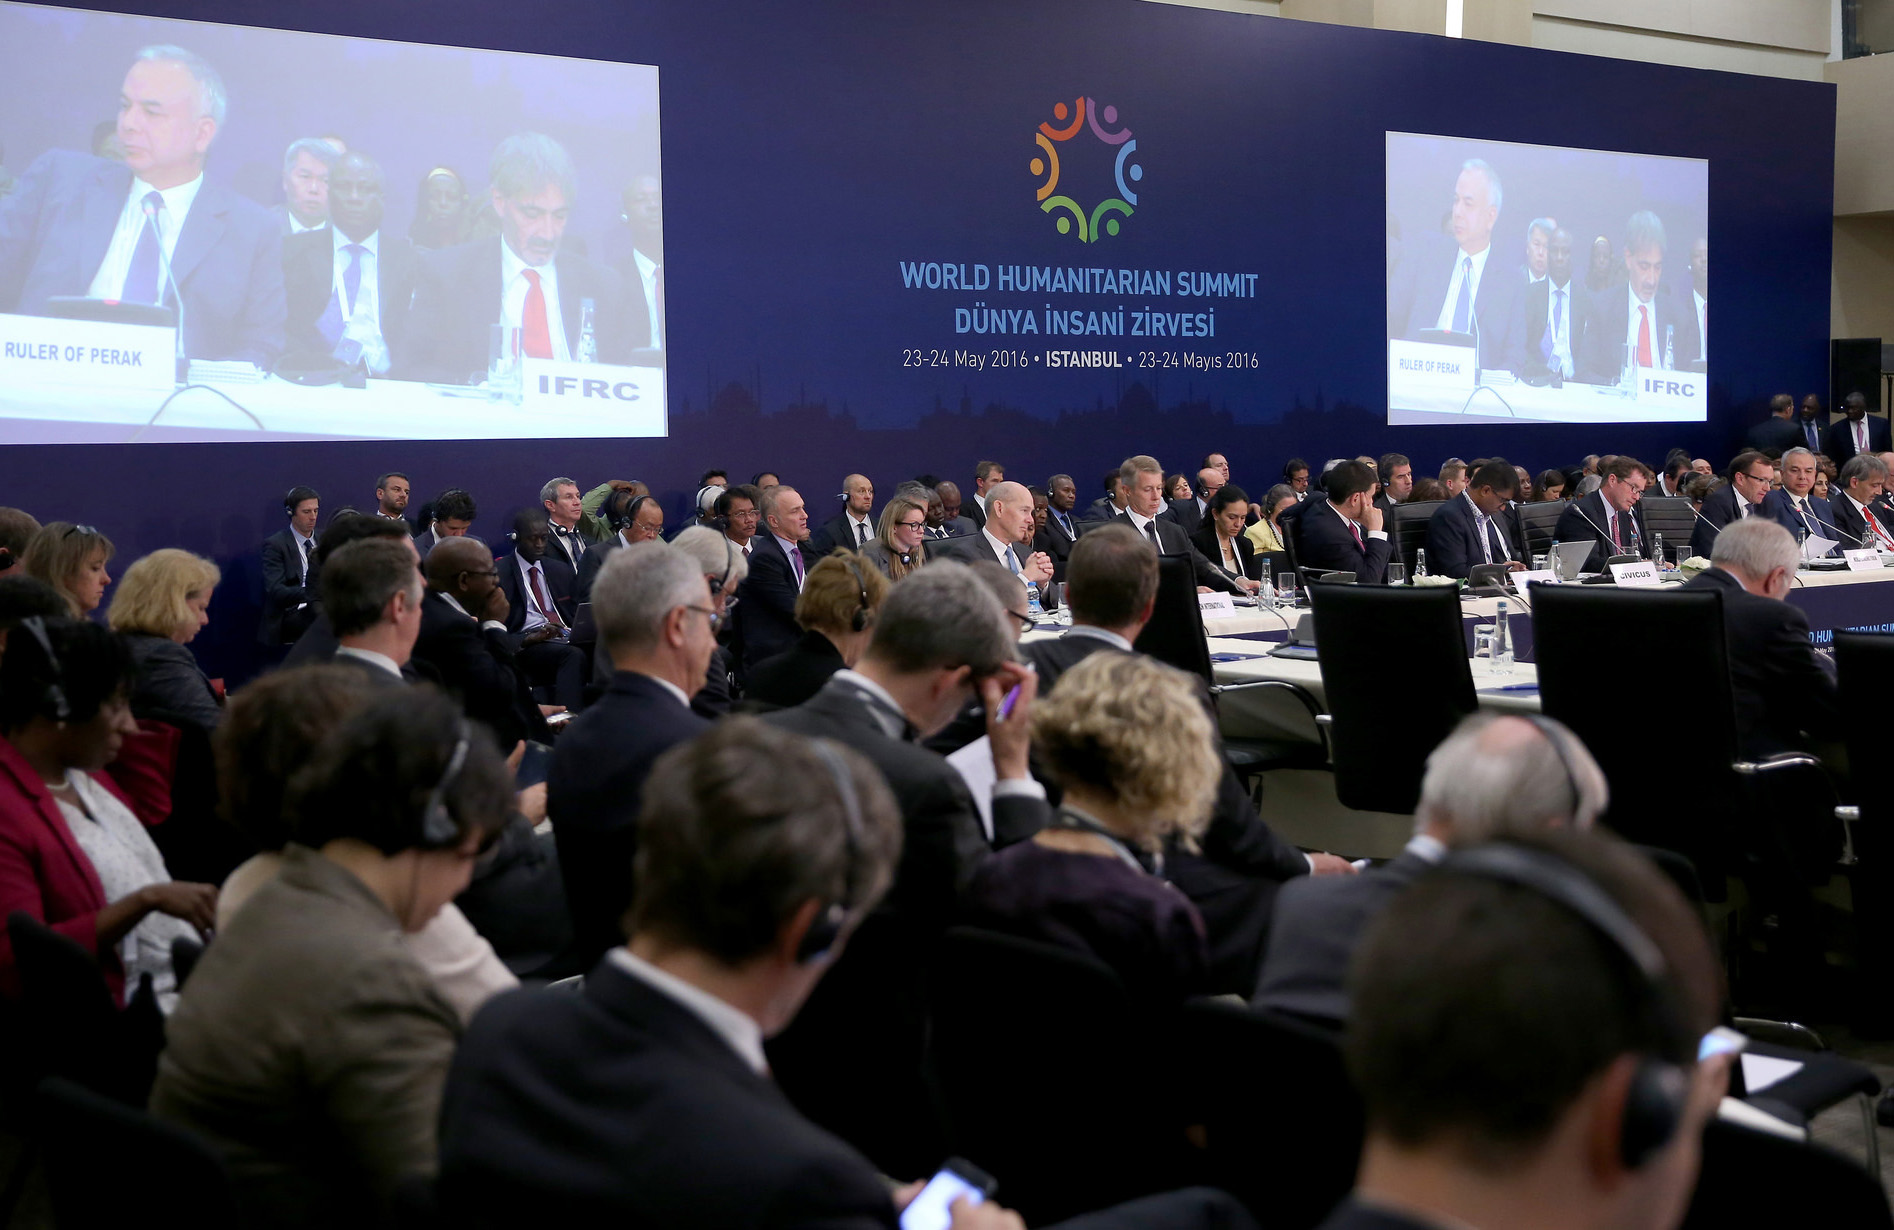 Global leaders gathered during the World Humanitarian Summit